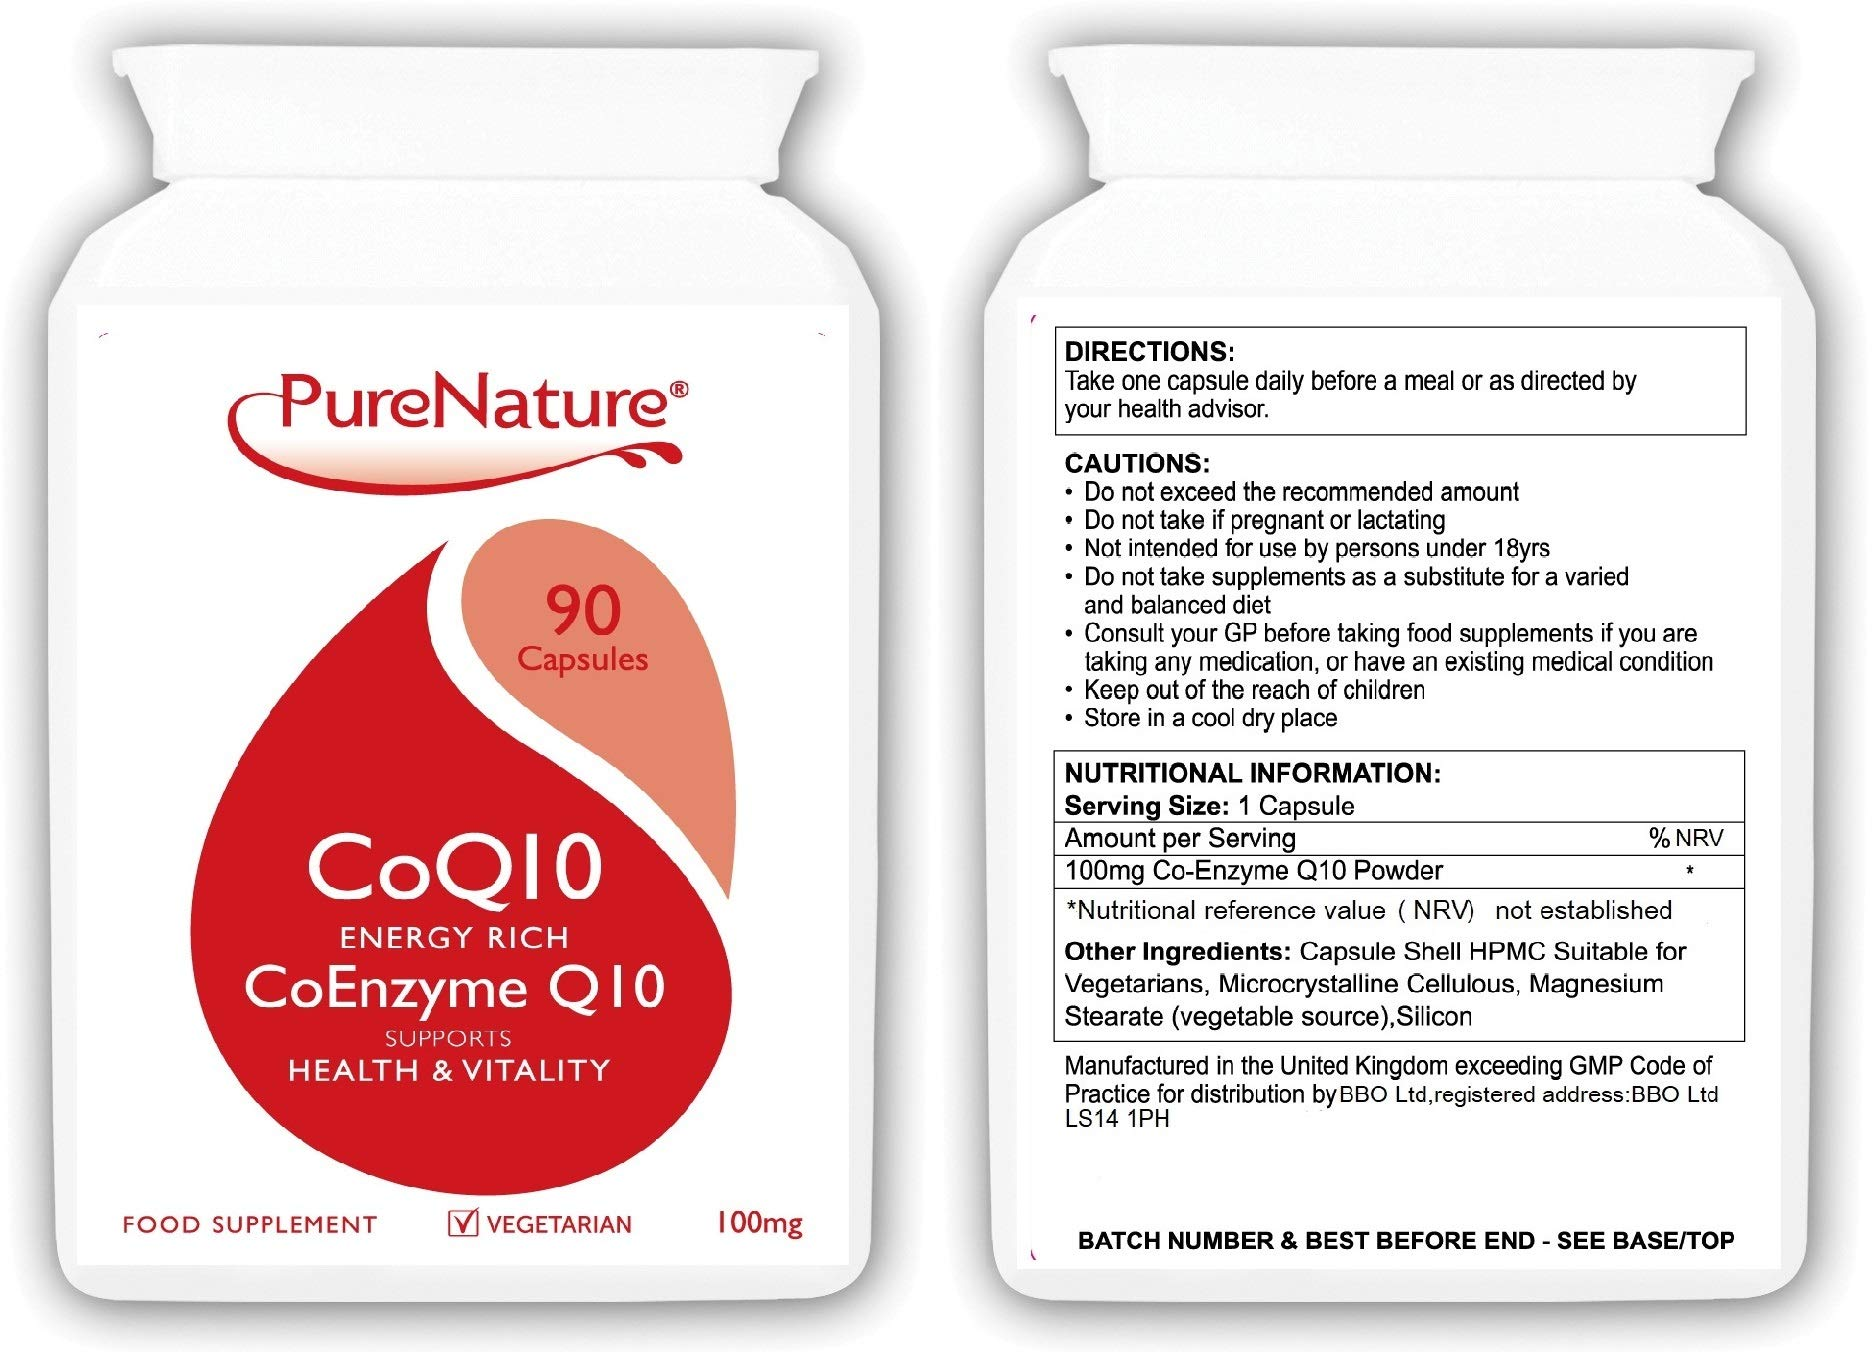 71OqVeMEu2L - Co-Enzyme Q10 High Grade Rapid Absorption 100mg | 90 Easy One-a-Day Vegetarian Capsules| 100% SATISFACTION GAURANTEE…